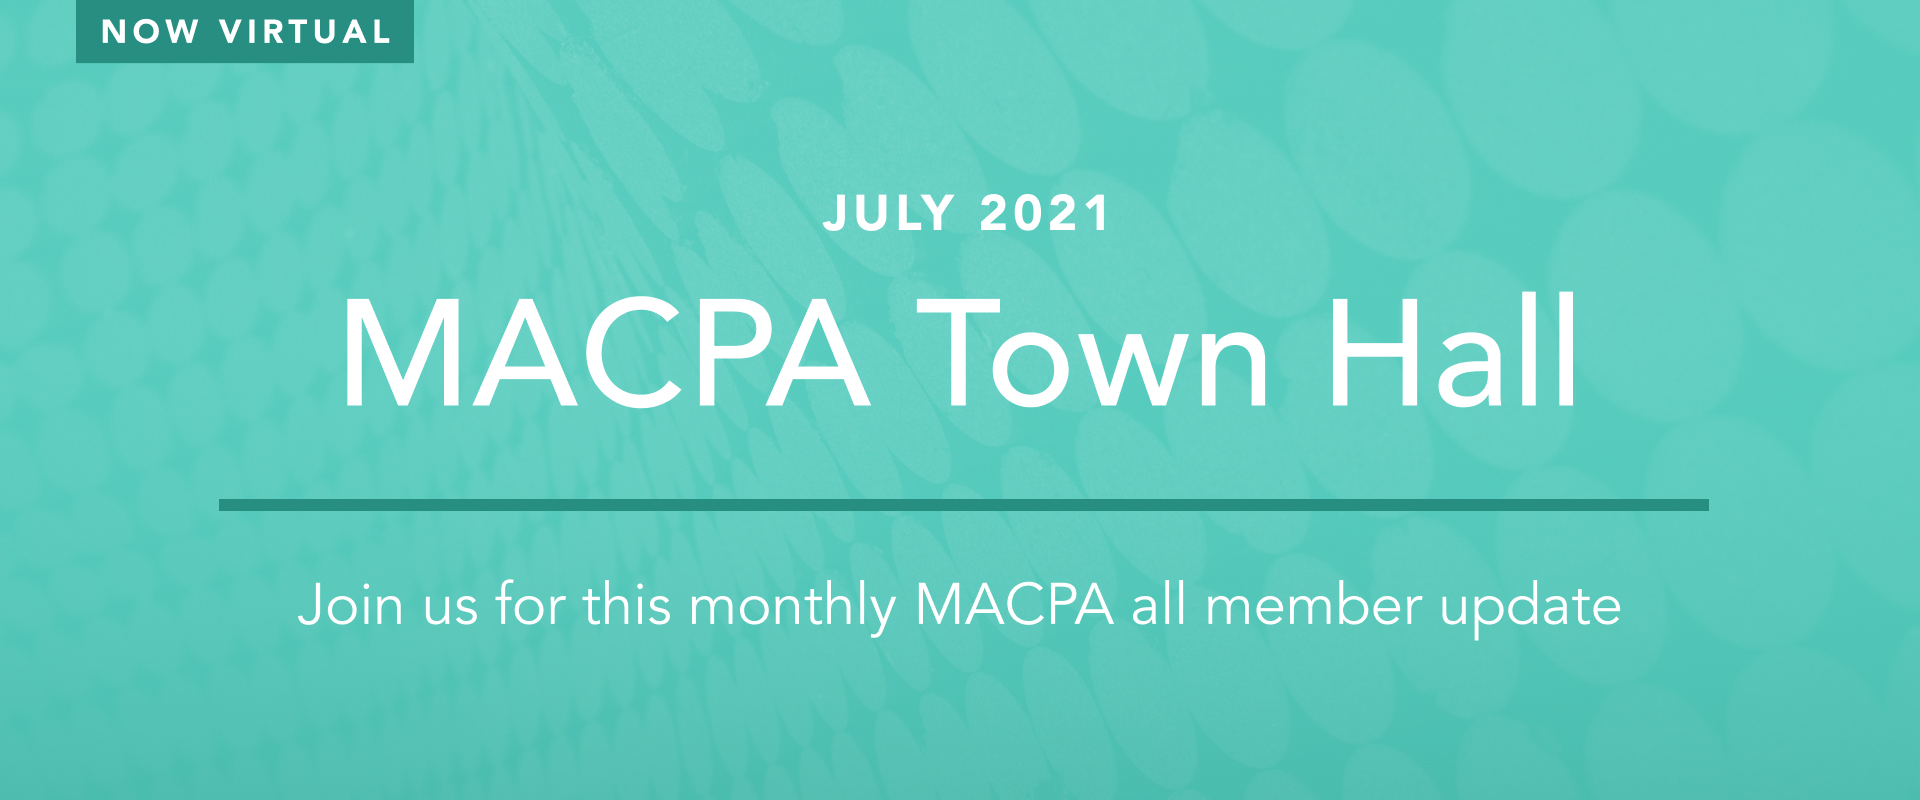 MACPA Town Hall (July 2021)